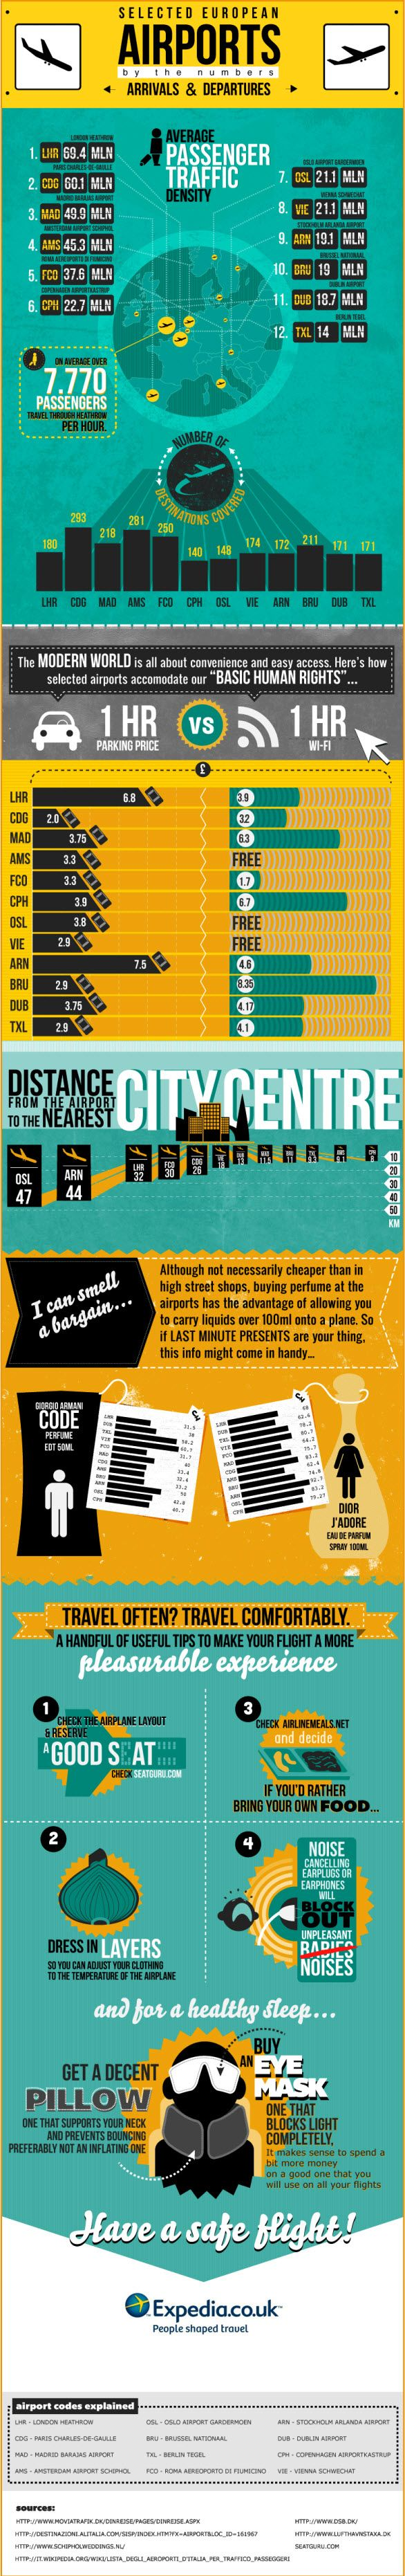 Headed to Europe? This infographic will make planning your flight a lot easier! Great info on destinations (which airport flies the most), amenities (who charges for Wifi or gives it away free), how far each airport is from the city center and how the prices vary in the duty free shops from airport to airport. Very useful #travel info!